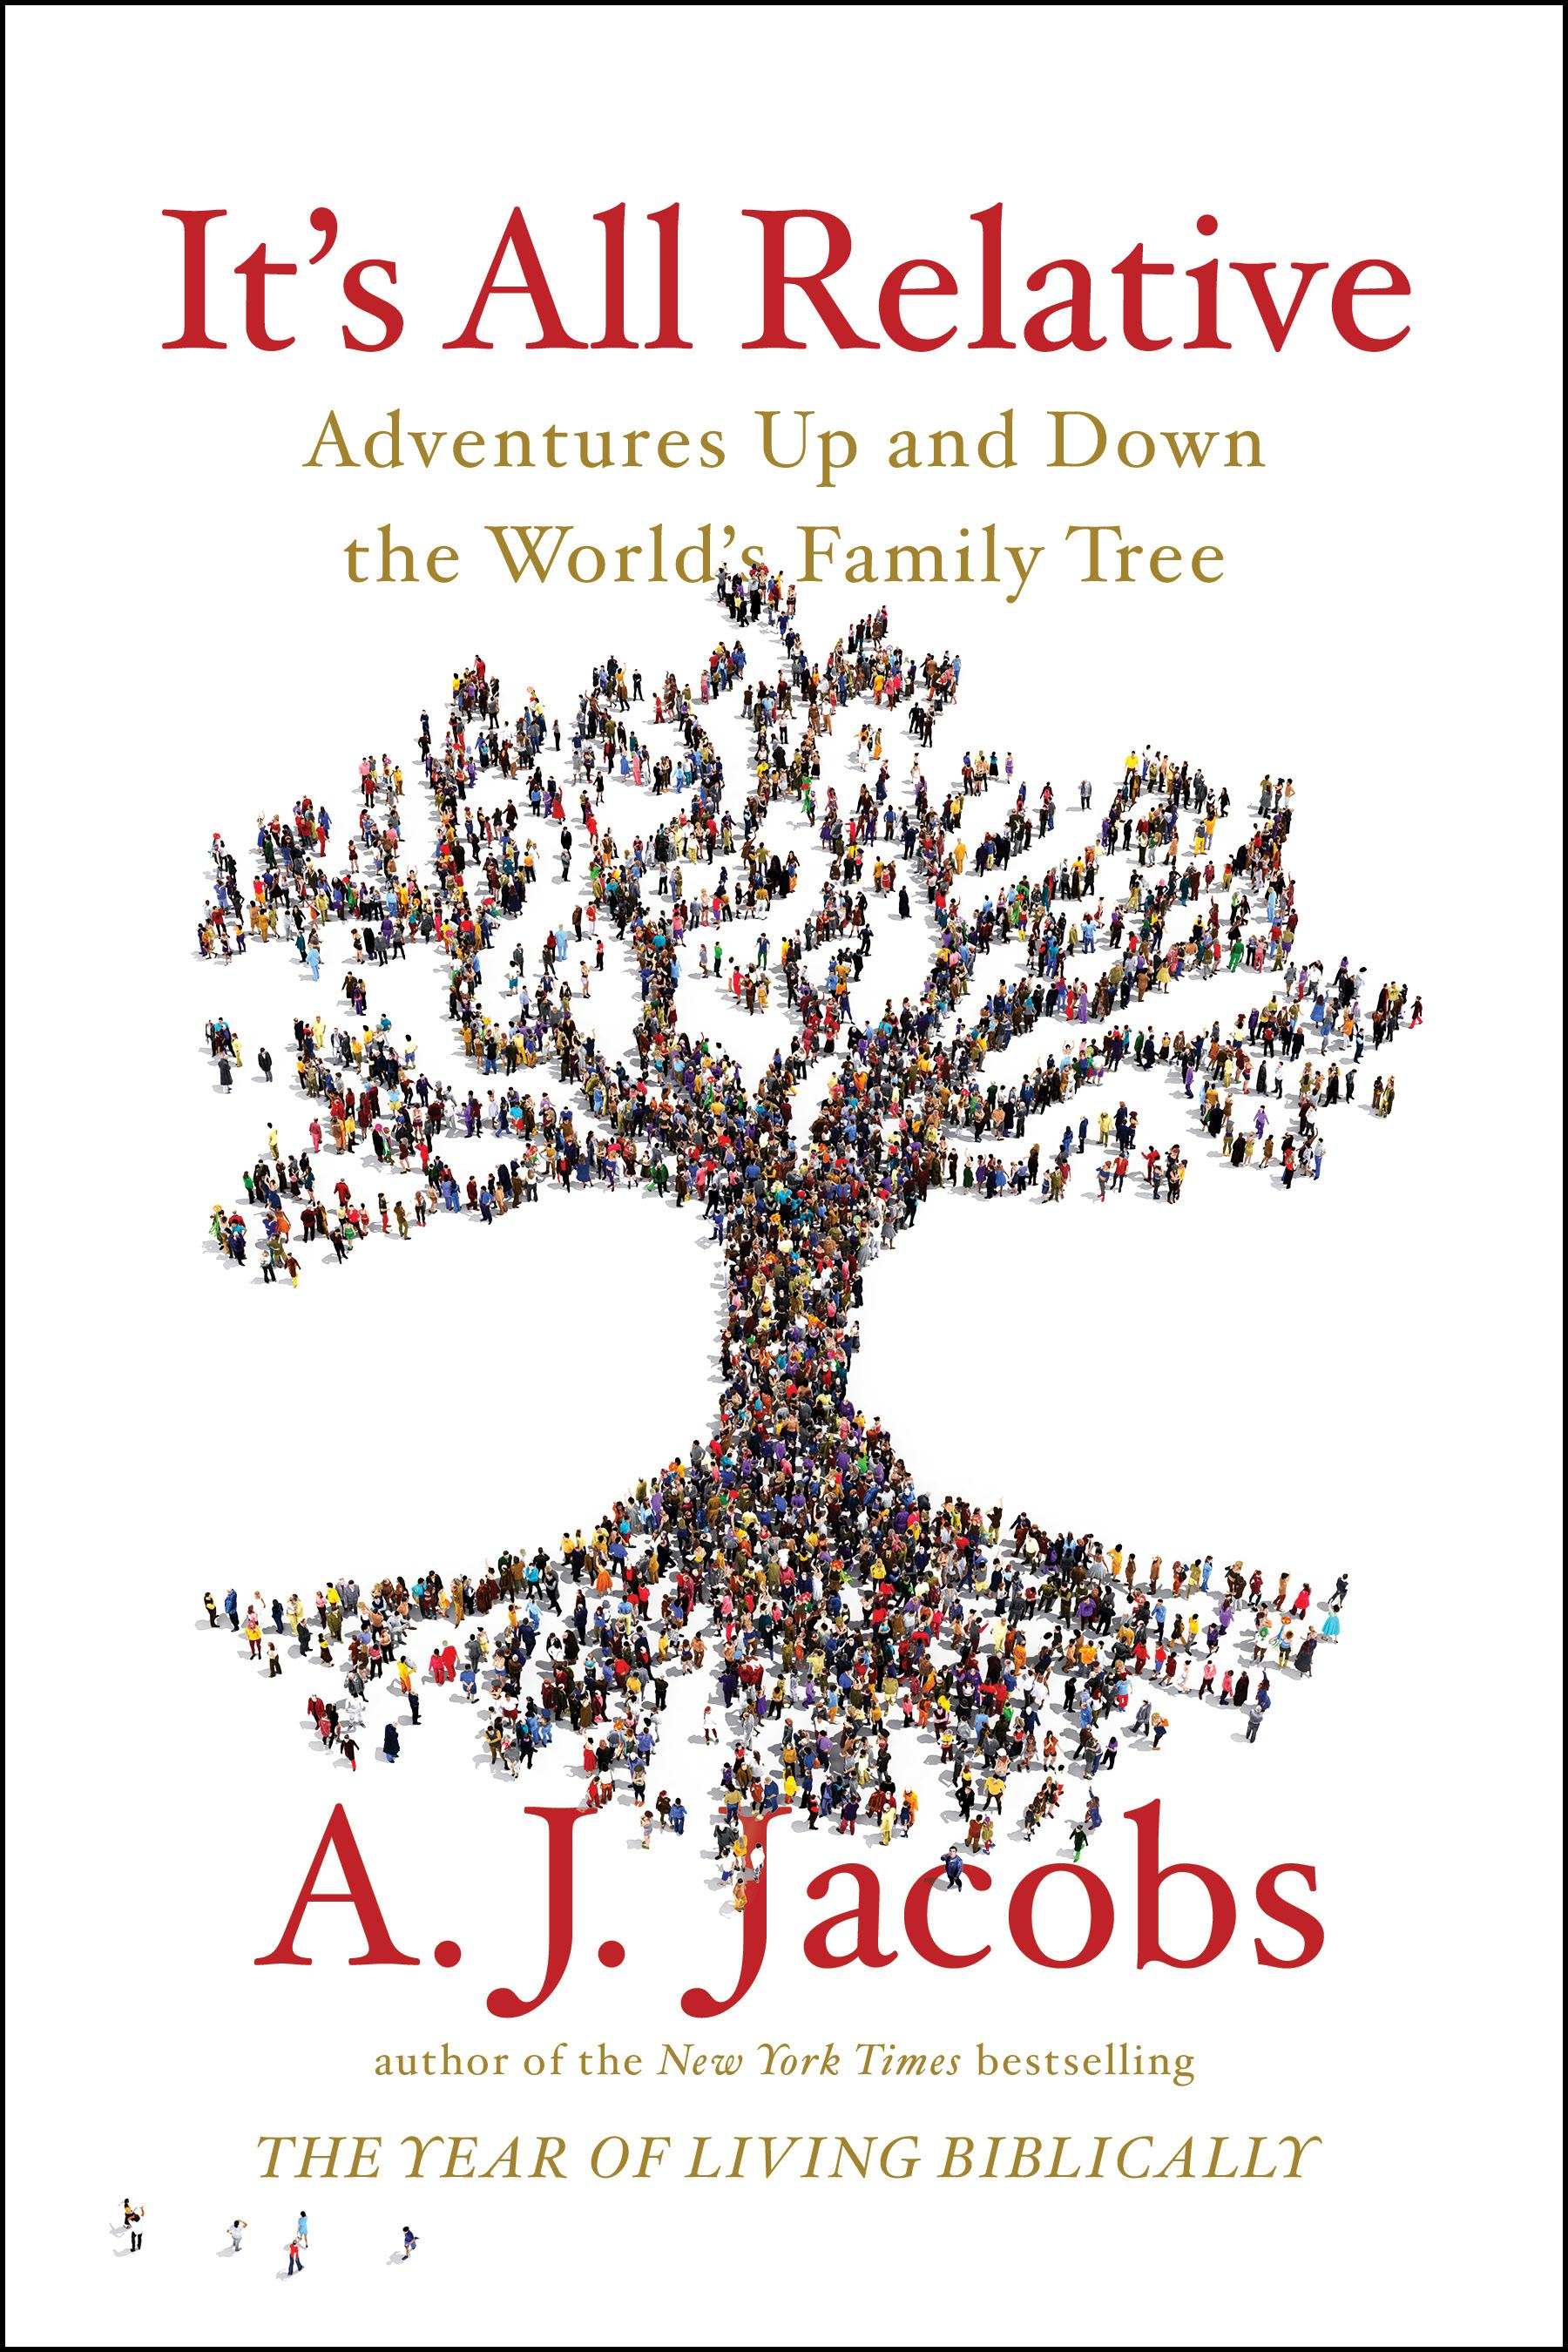 """It's All Relative: Adventures Up and Down the World's Family Tree"" by A.J. Jacobs"